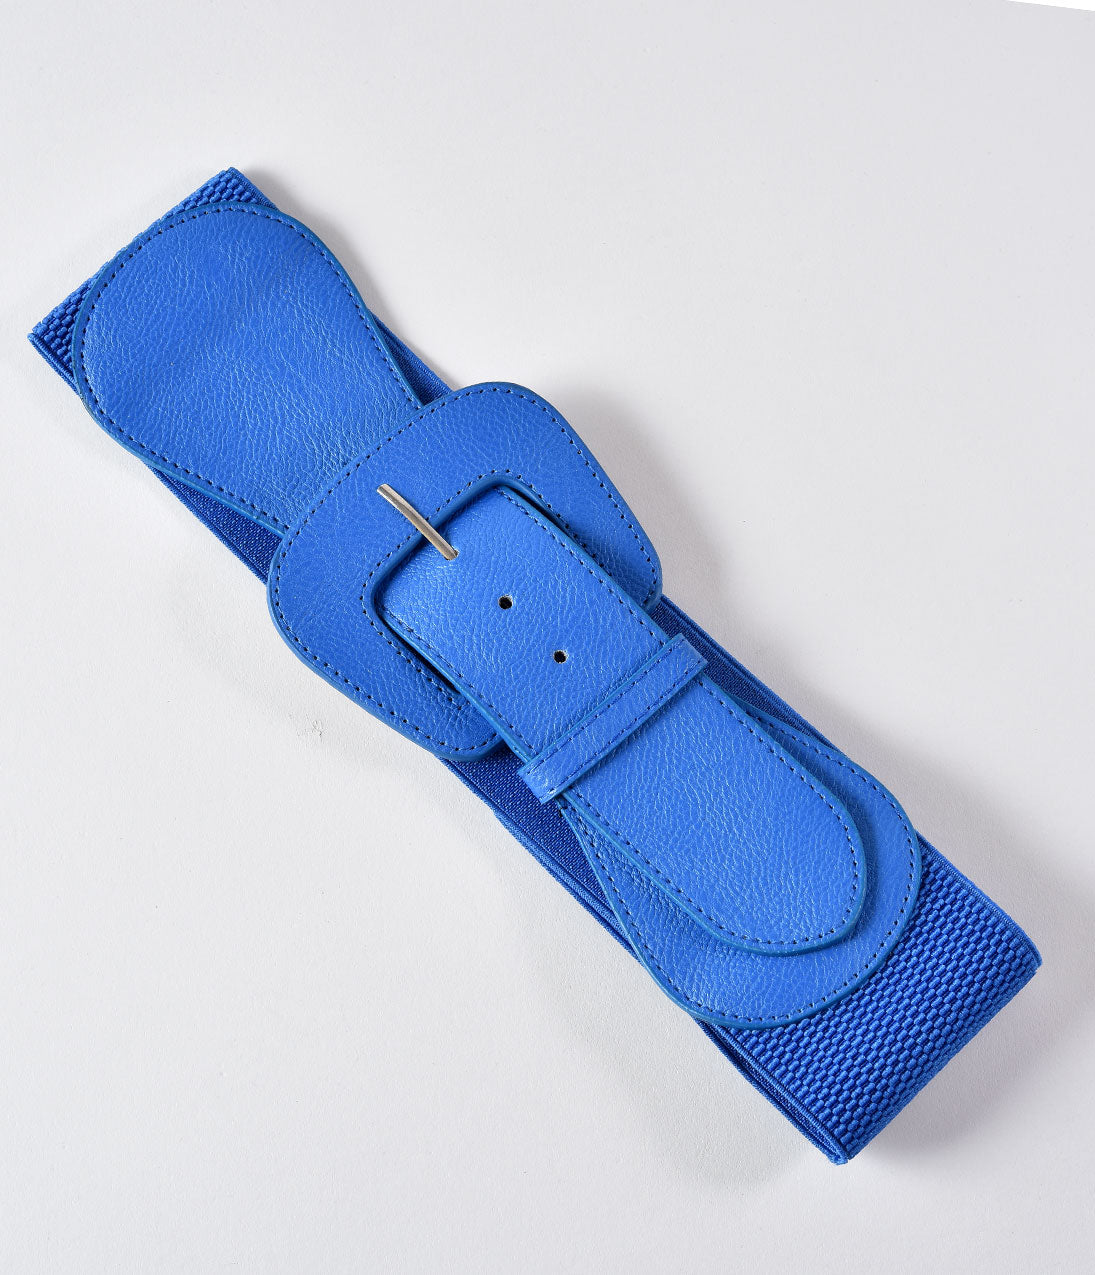 Vintage Scarf Styles -1920s to 1960s Retro Style Blue Leatherette Wide Elastic Cinch Belt $14.00 AT vintagedancer.com